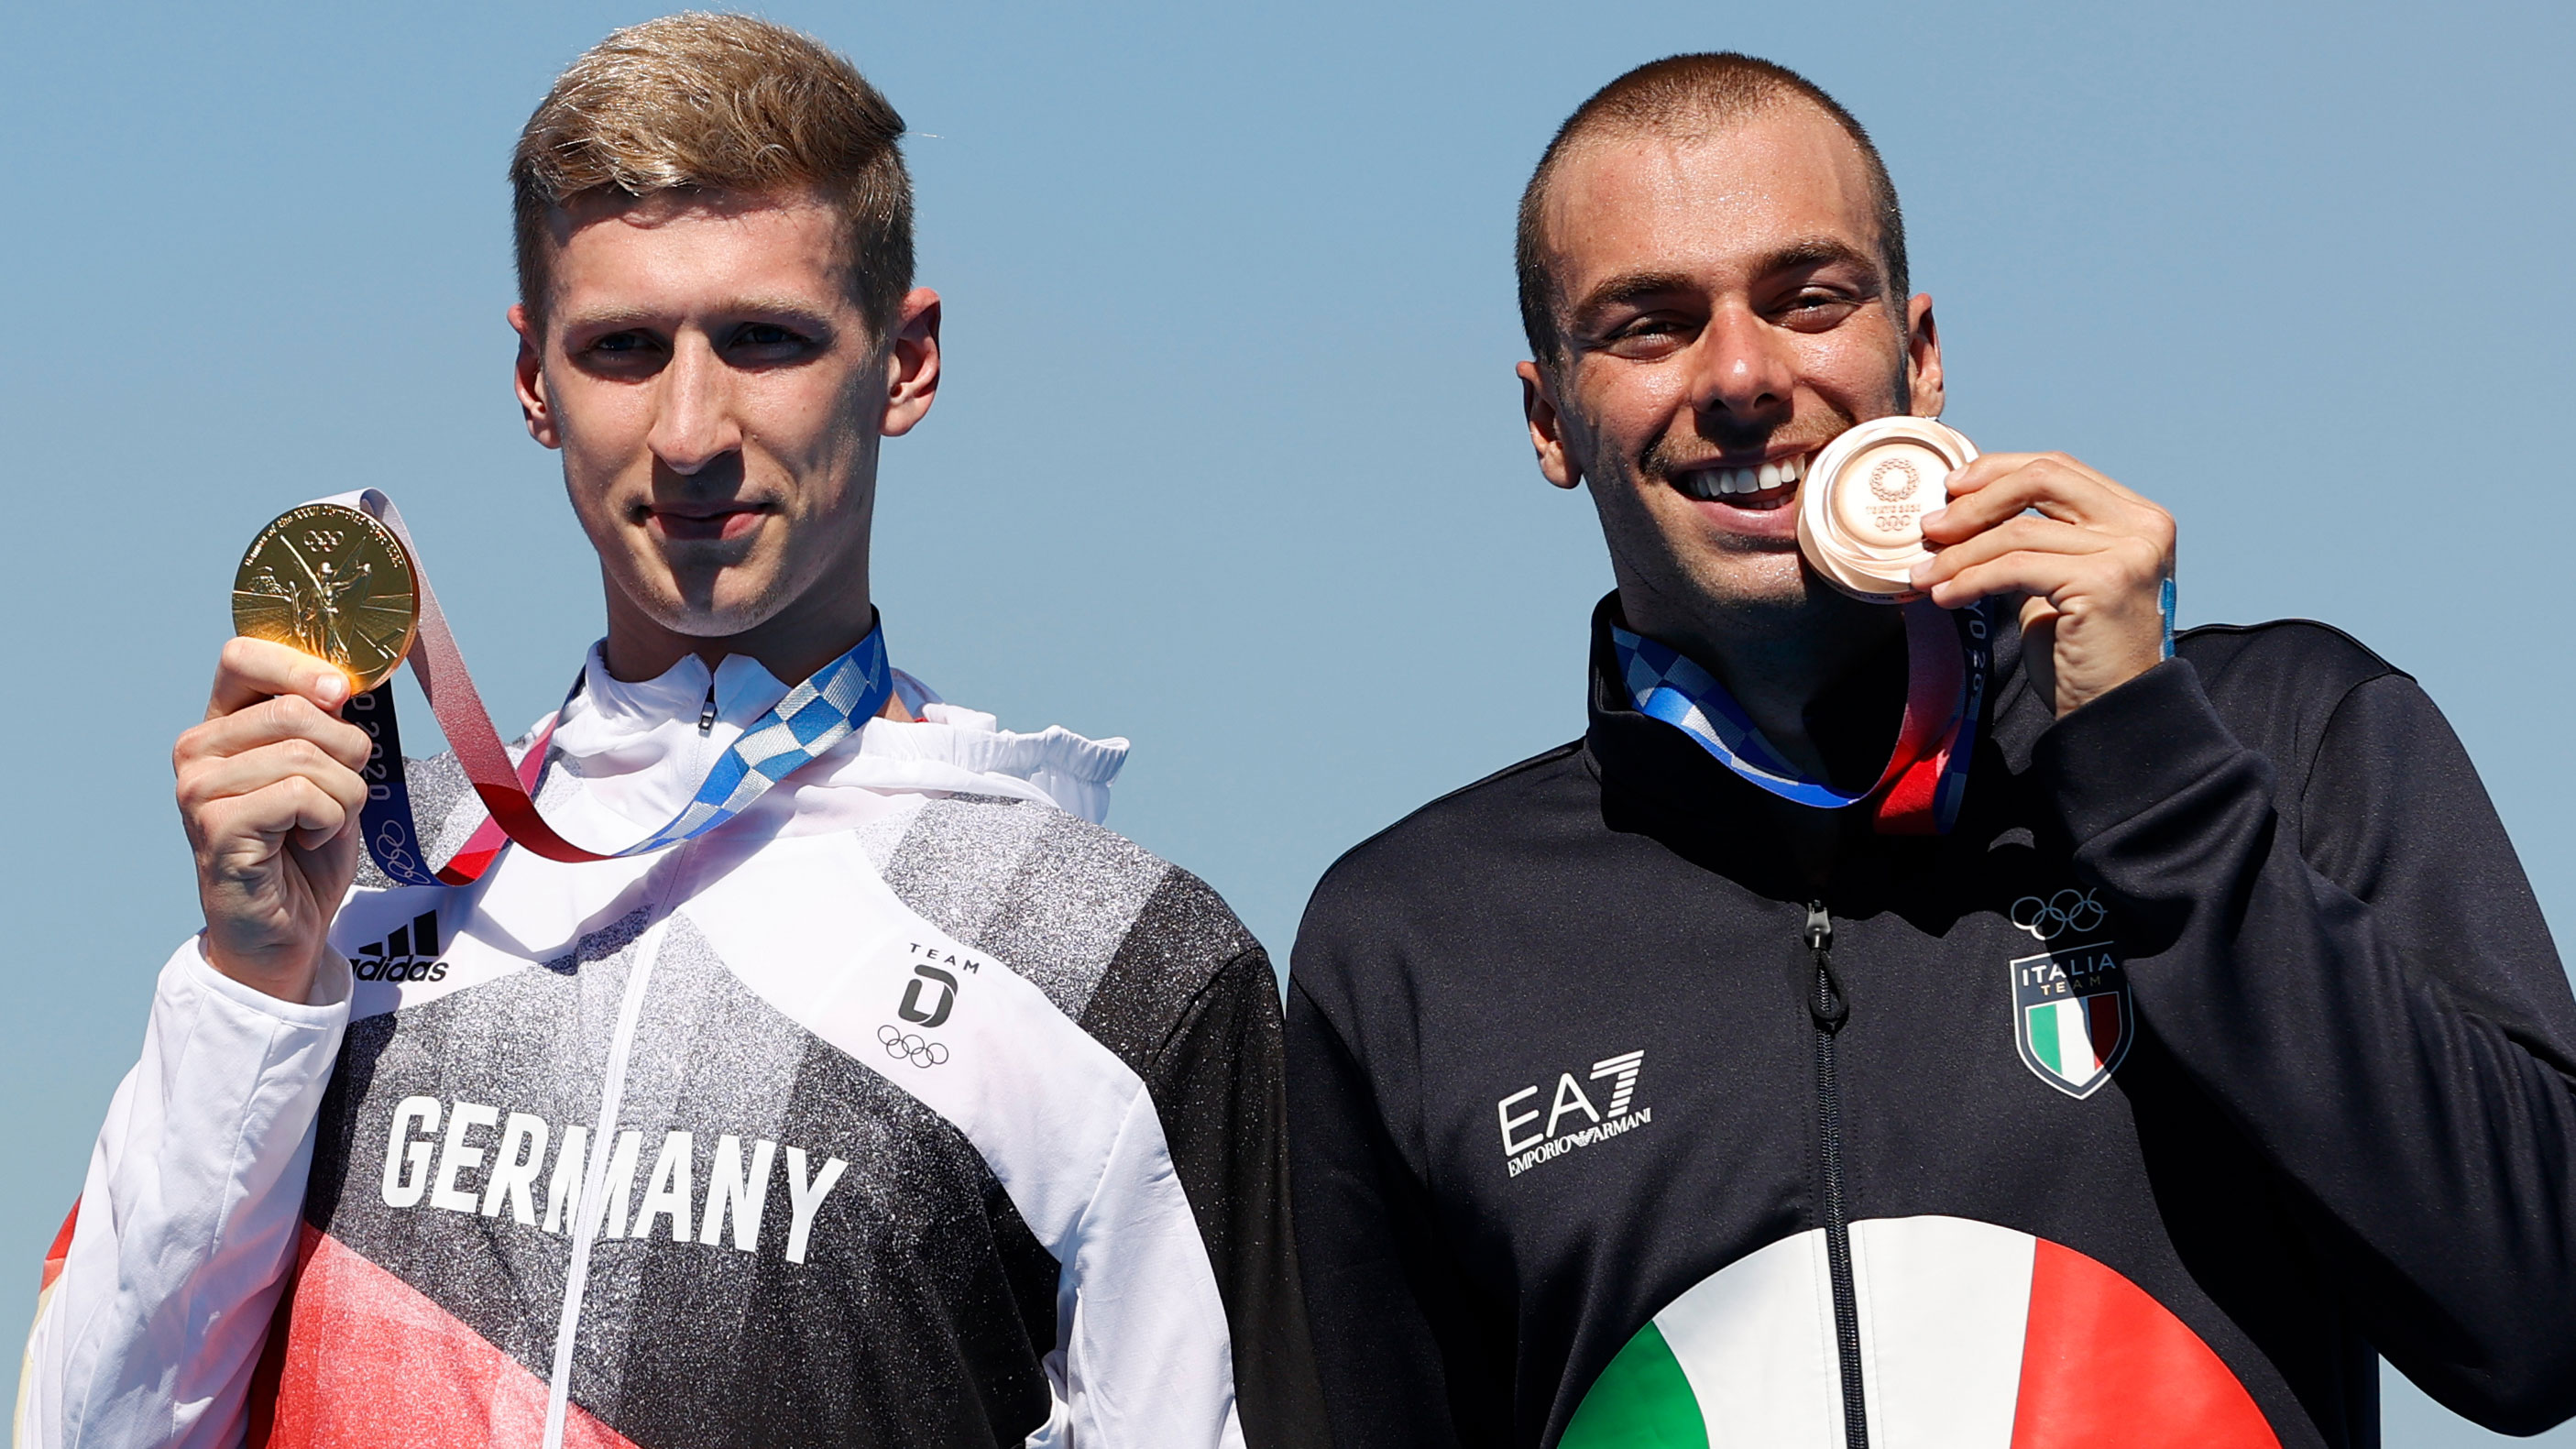 Germany's Florian Wellbrock and Italy's Gregorio Paltrinieri pose for photos with their gold and bronze medals for the 10-kilometer swimming event on August 5.